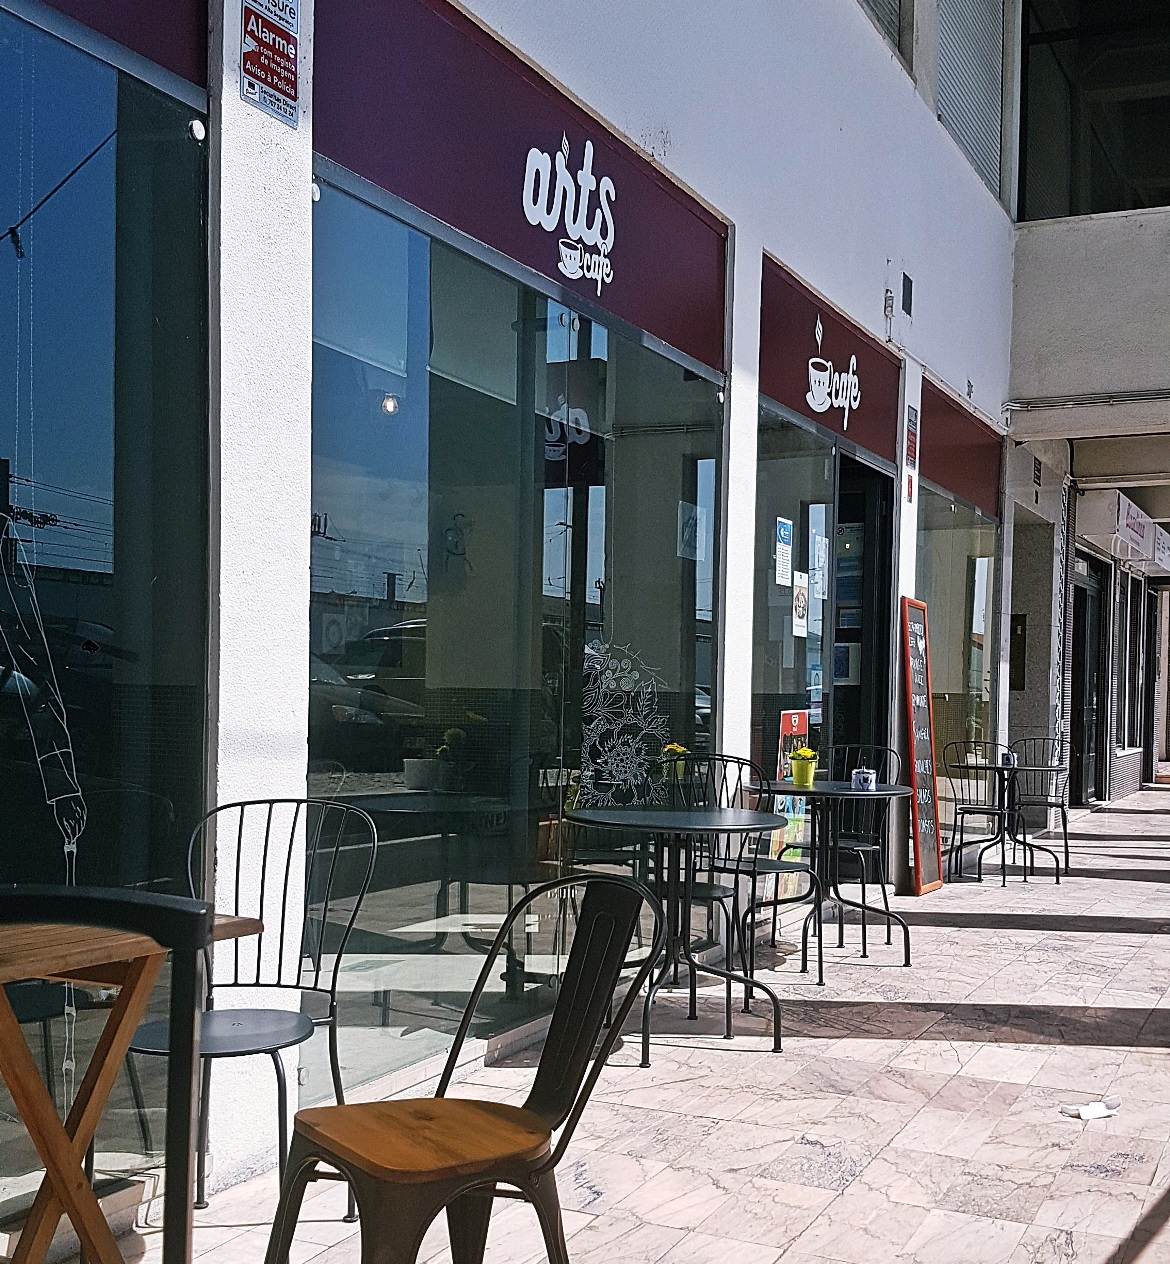 The best breakfast in Lisbon, Arts Cafe - Food and Drink in Lisbon, review by BeckyBecky Blogs